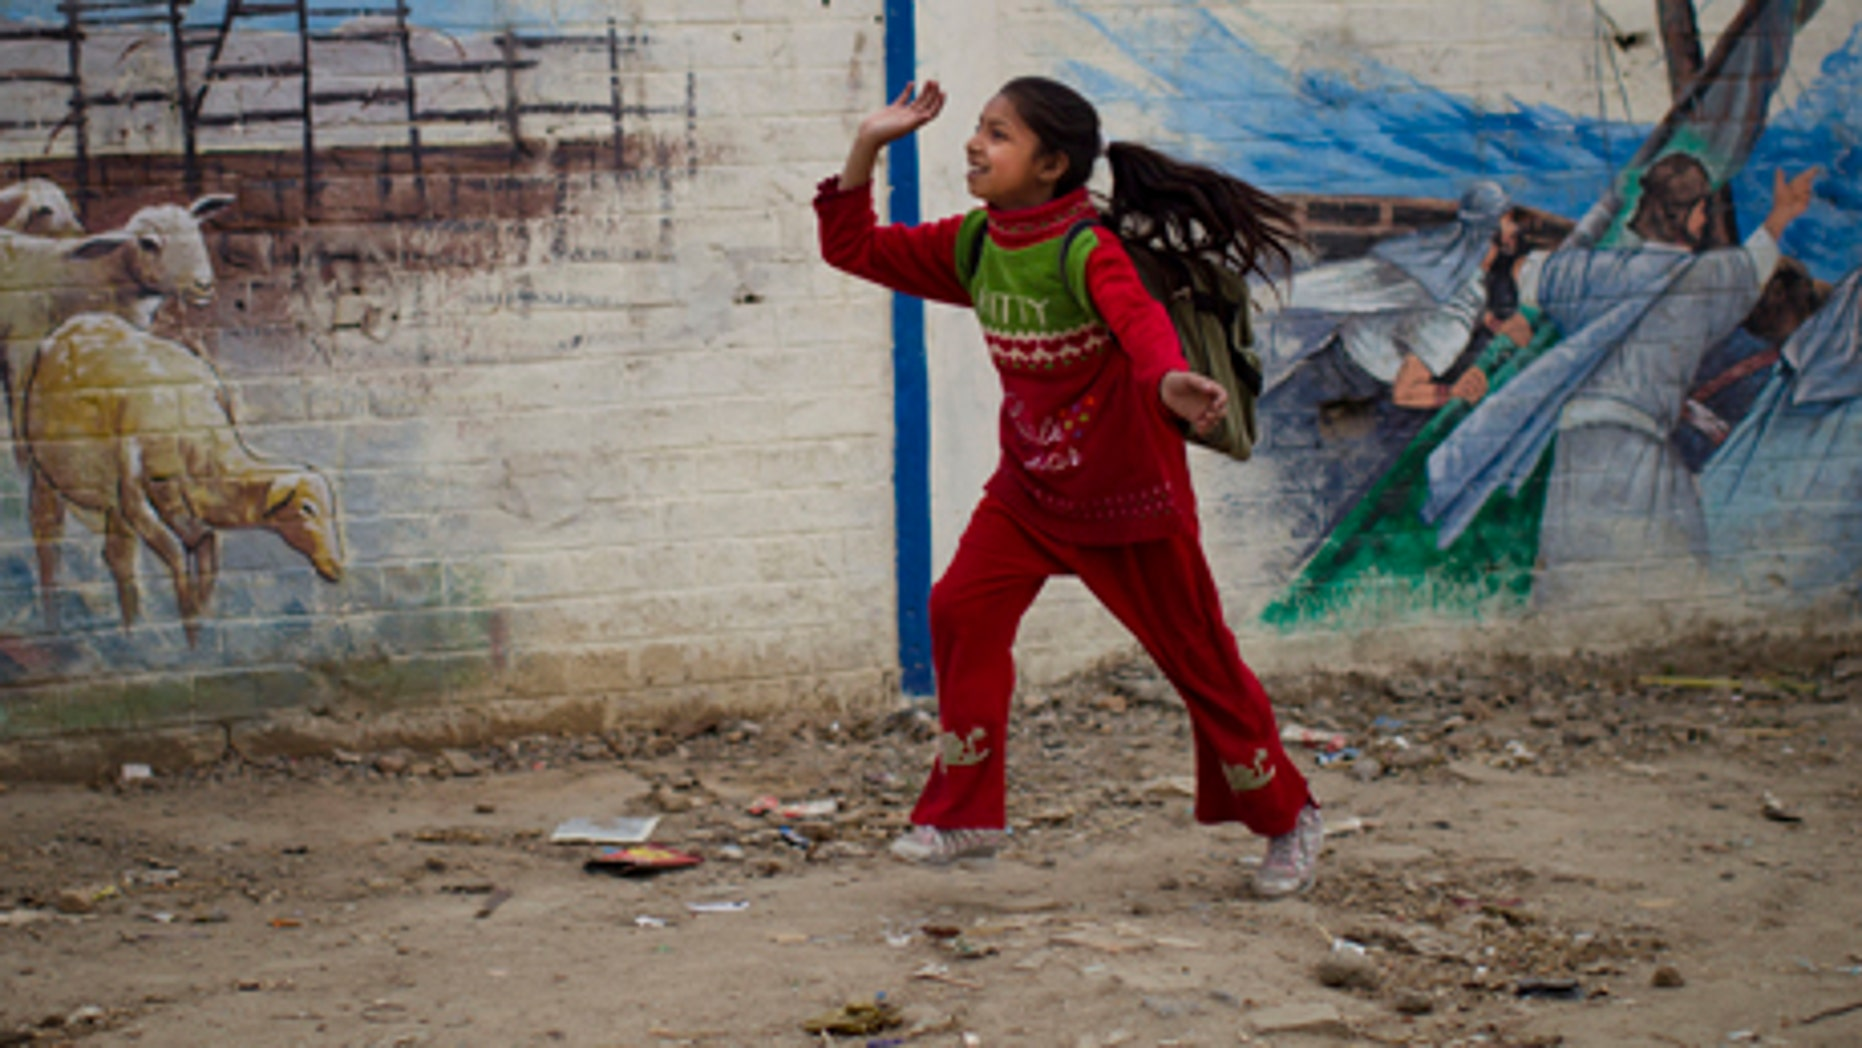 March 11, 2012: A Pakistani Christian girl plays with a balloon next to a wall with biblical paintings at the Christian colony in the center of Islamabad, Pakistan. Roughly five percent of Pakistan's 180 million people belong to minority religions, which include Hindu, Christian, Shiite Muslims and Ahmedis, according to the CIA World Factbook.